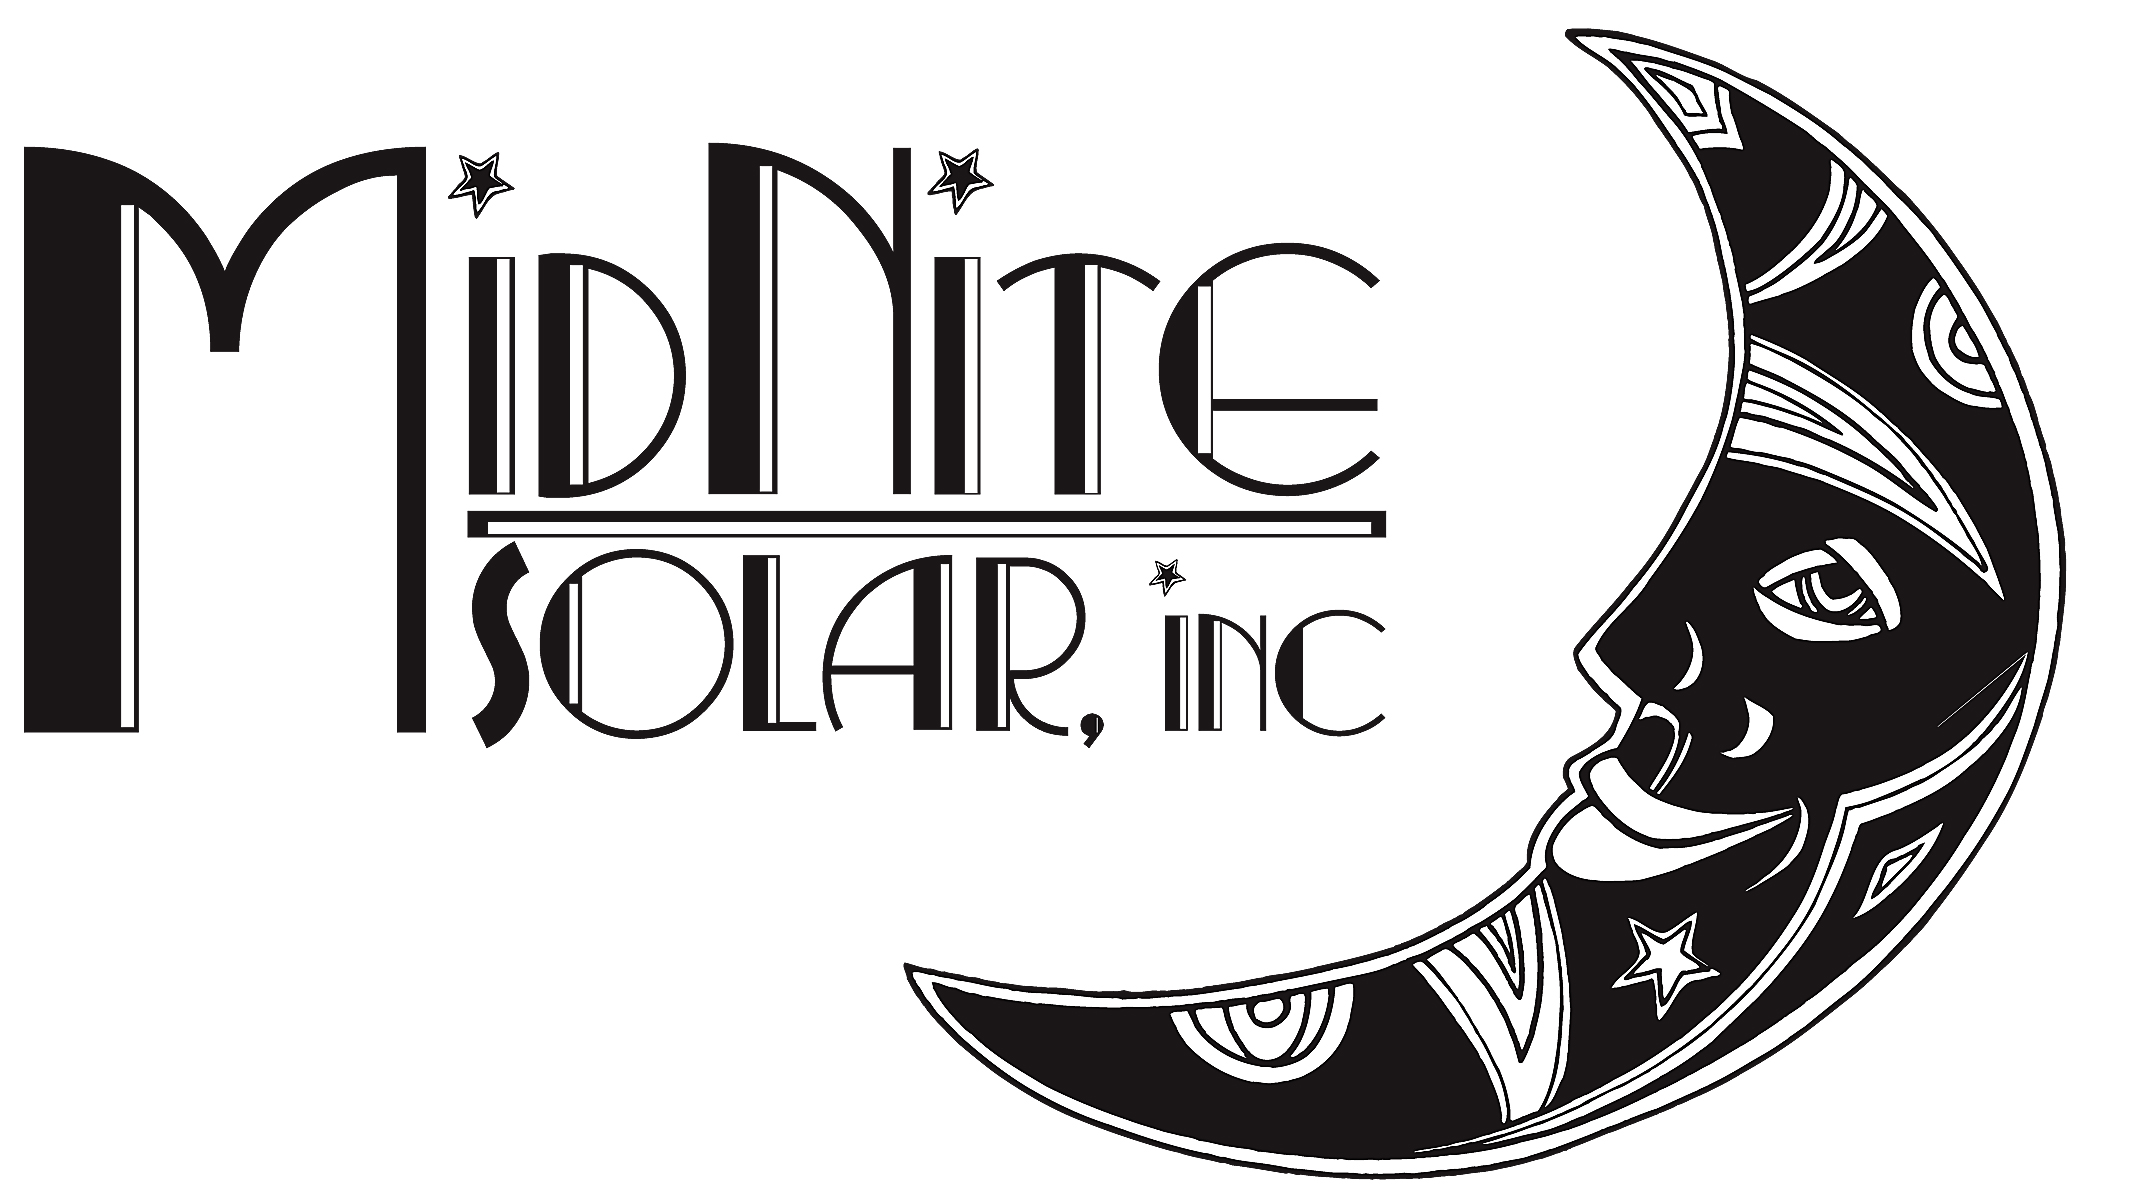 Midnite Solar Support Contacts